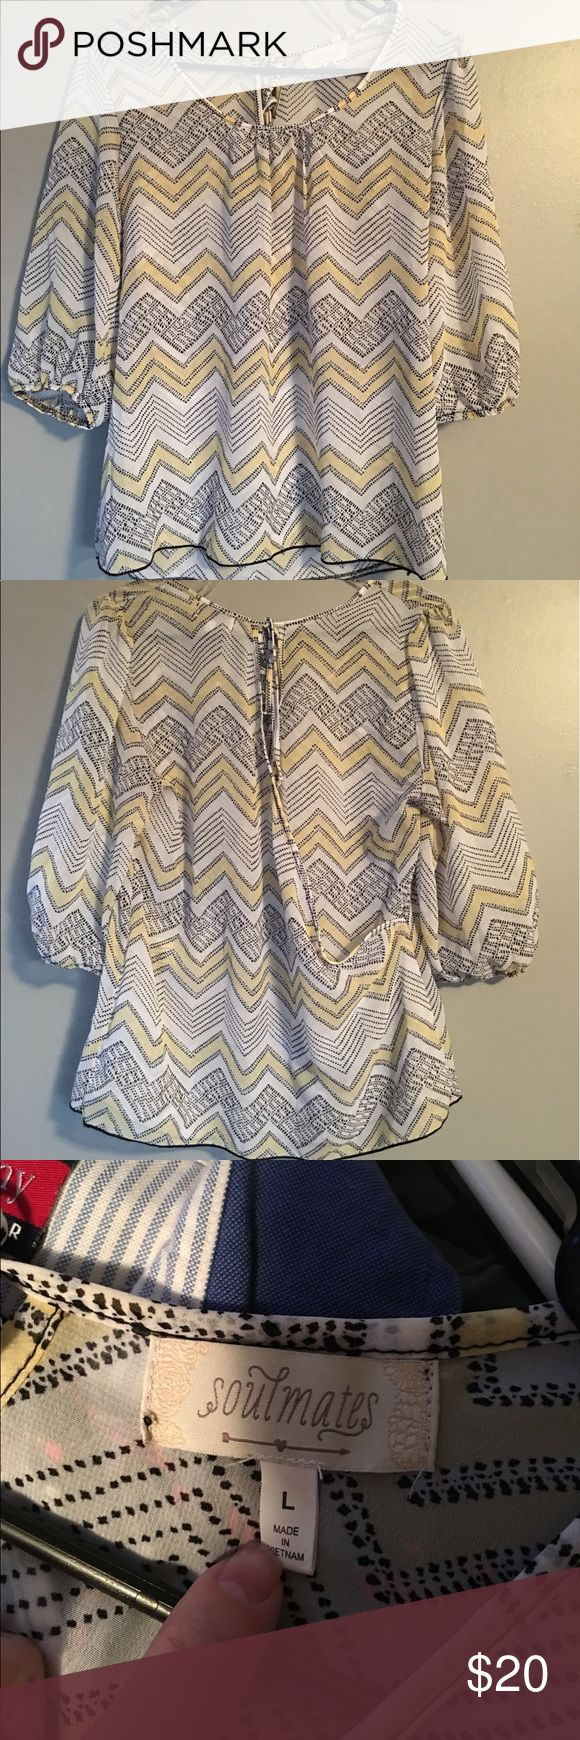 Yellow and gray chevron blouse Soulmates brand Yellow and gray chevron blouse. Sheer material with over laying back. Size large. 3/4 sleeves. Soulmates Tops Blouses